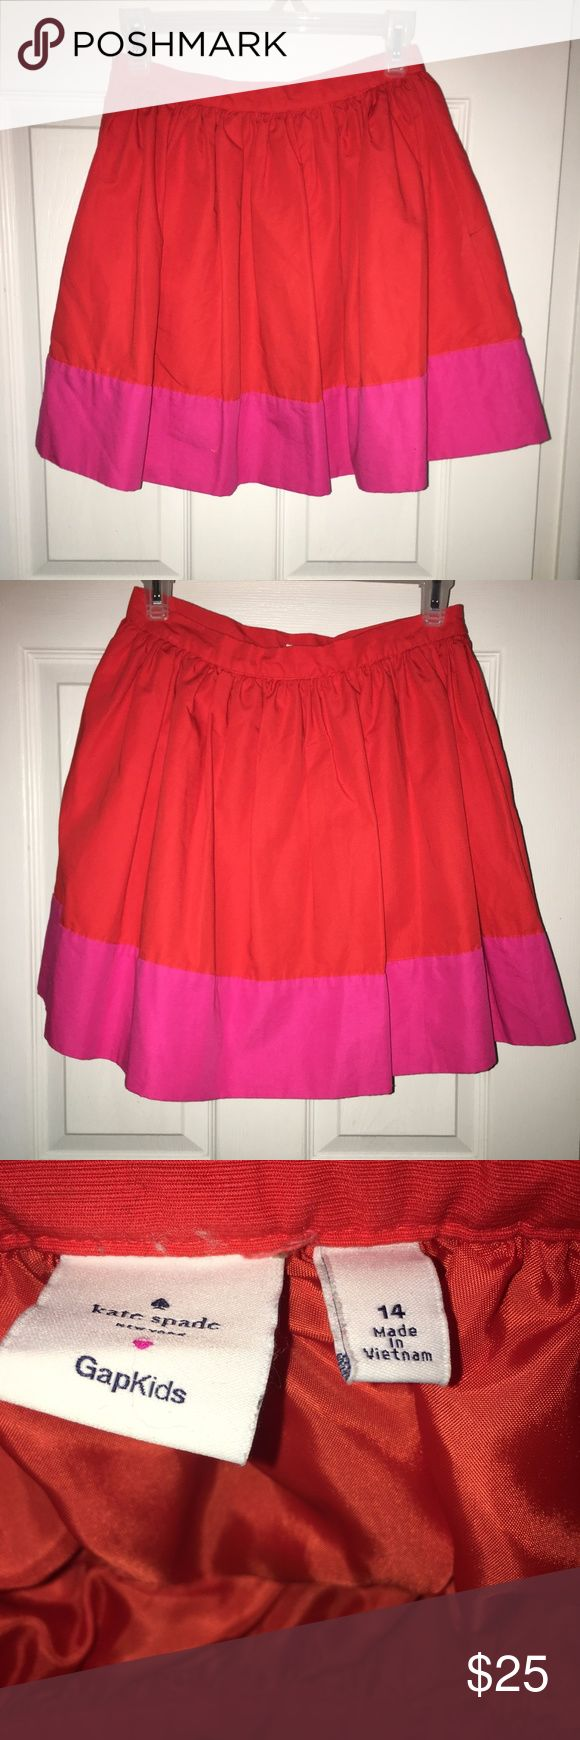 Girls KATE SPADE for GAP Kids Red Hot Pink Cotton Girls KATE SPADE for GAP Kids Red Hot Pink Cotton Linen Blend Skirt Sz 14. Very good condition, no rips, no tears, no stains. #katespadegapkids #katespadeforgapkidsclothing #kidskatespadeclothing #katespadegapkidslinenblendskirt #gapkidslinenblendskirtsz14 kate spade Bottoms Skirts